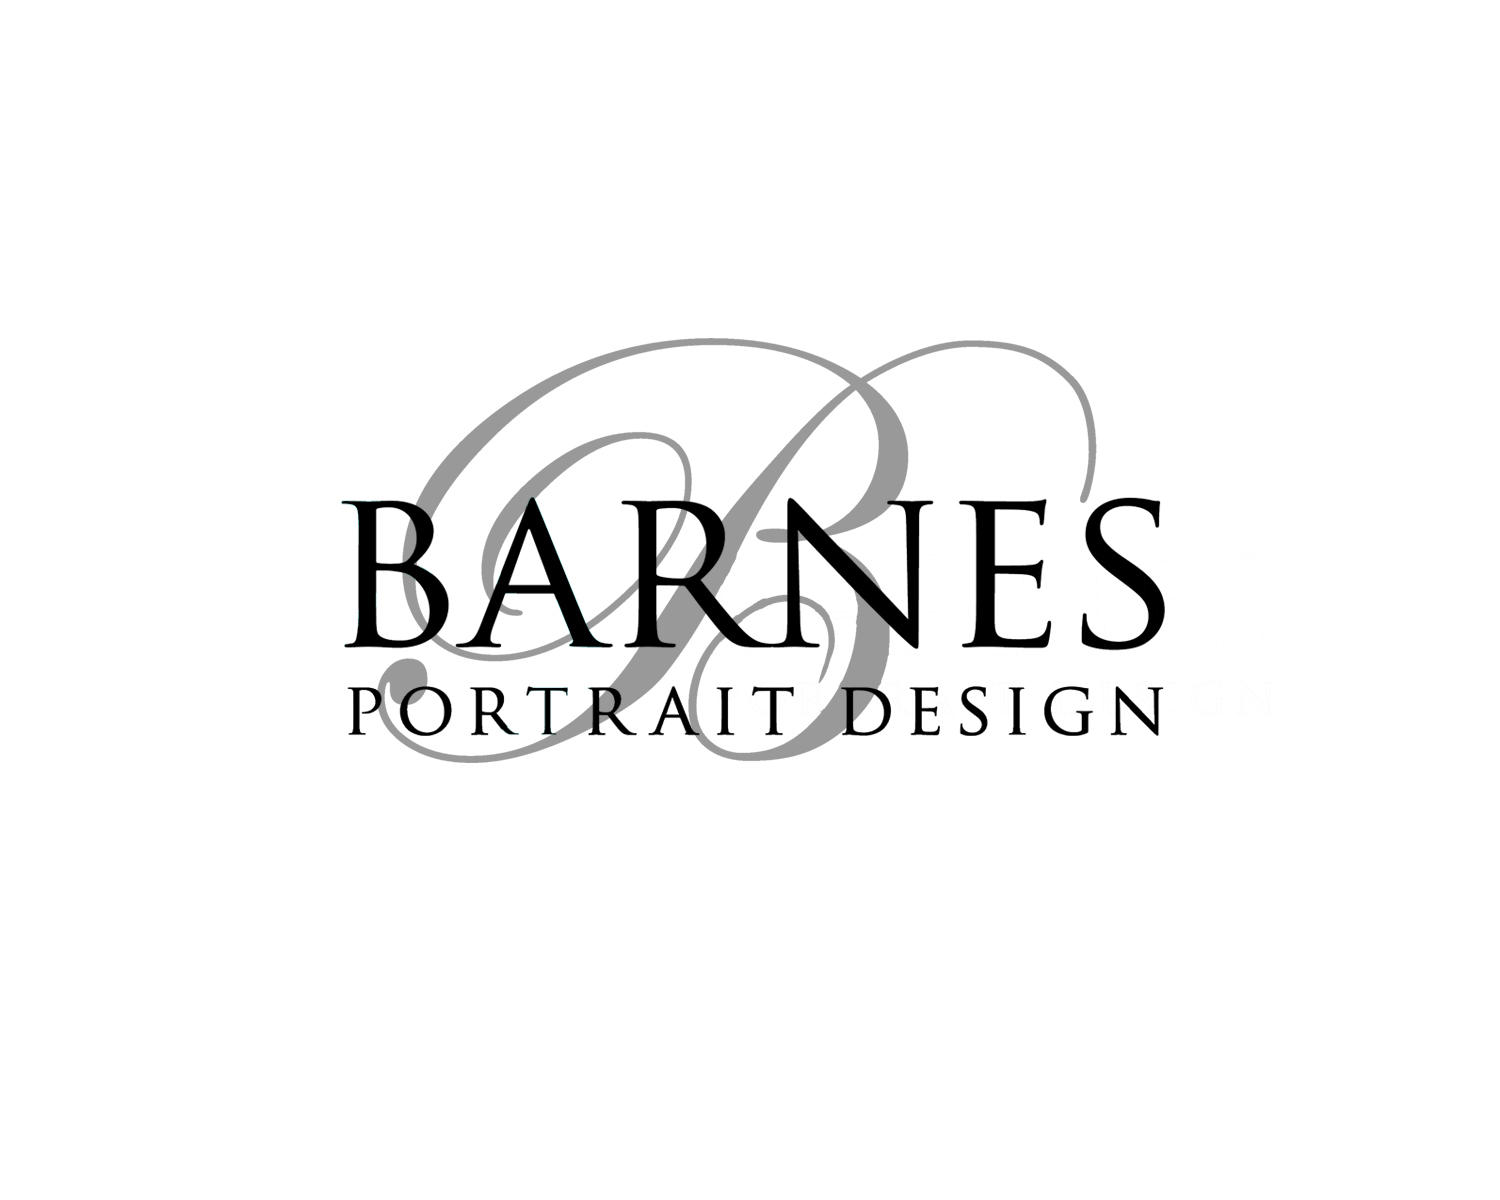 Barnes Portrait Design